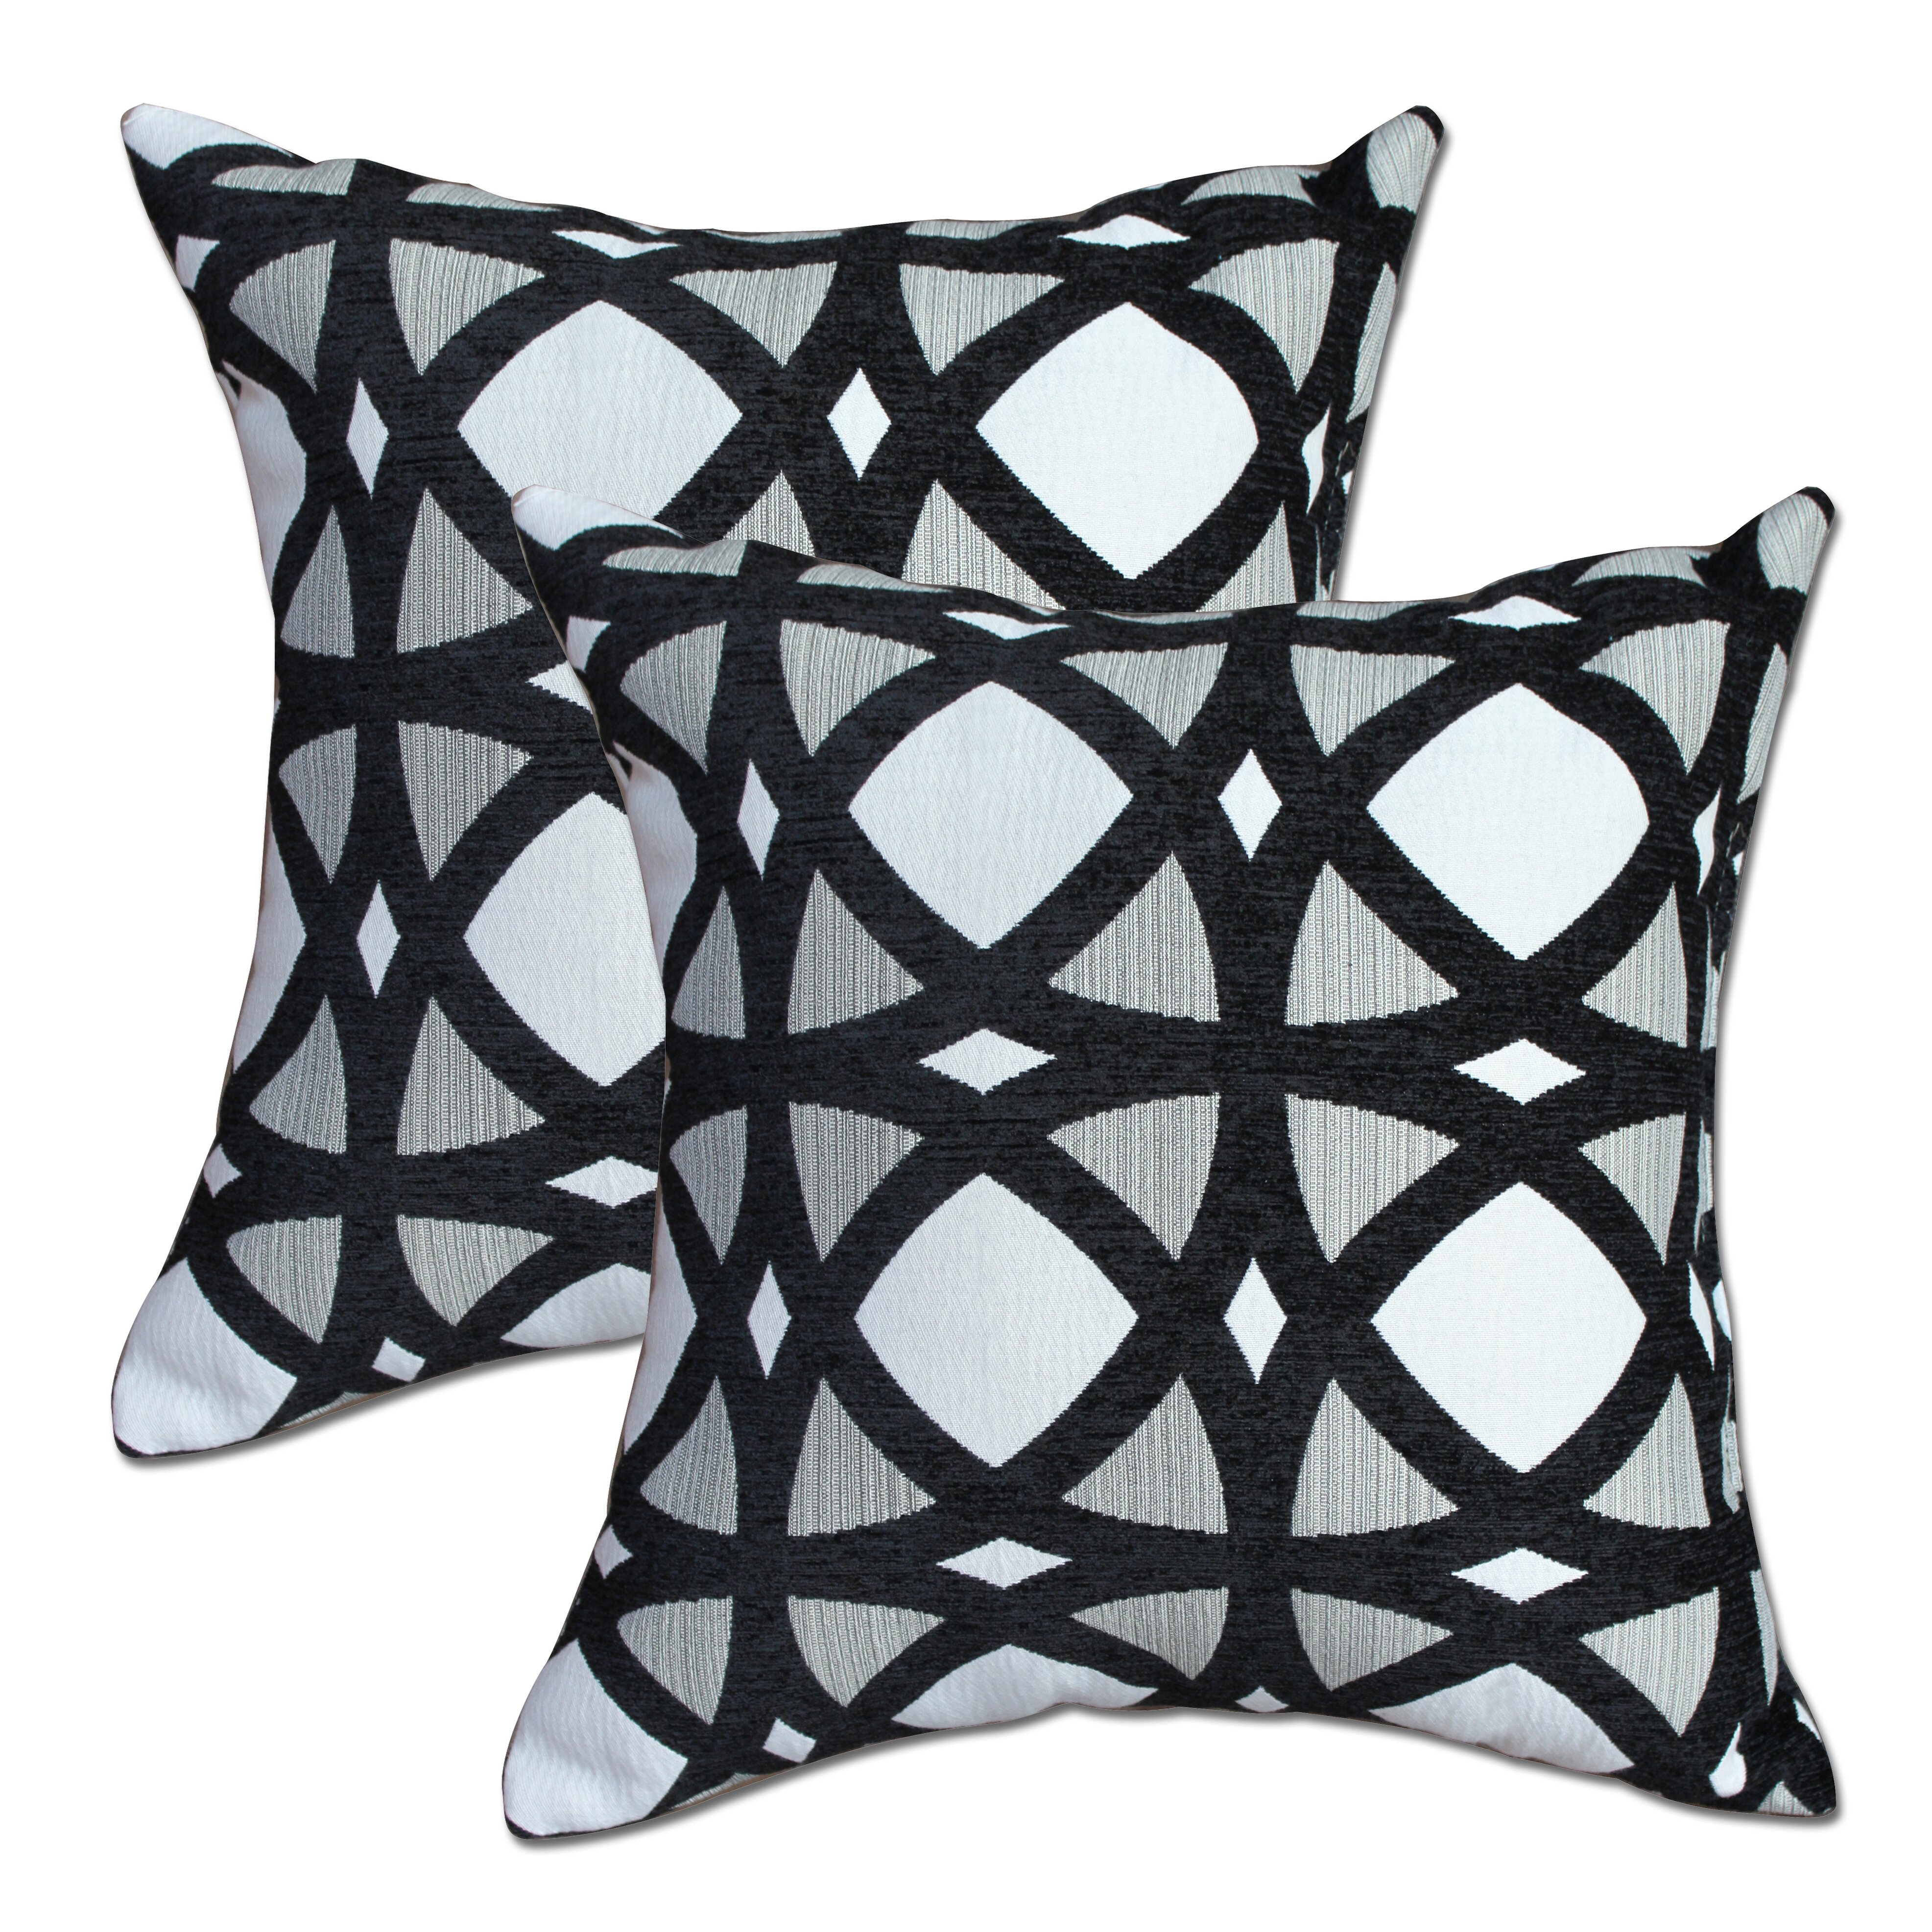 Big Black Decorative Pillows : Mosaic Black Throw Pillow Wayfair